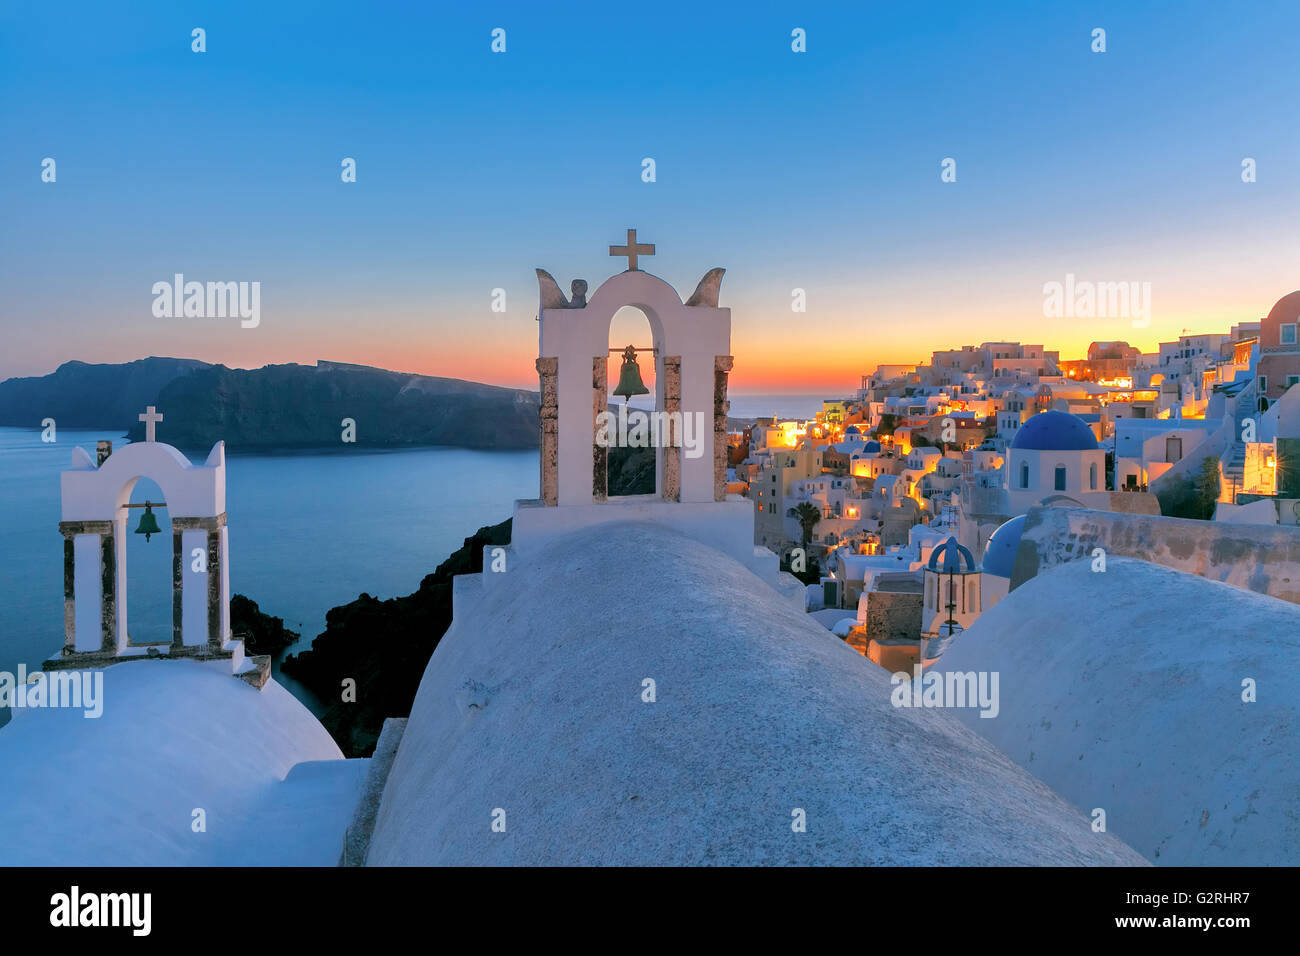 Picturesque view of Oia, Santorini, Greece - Stock Image